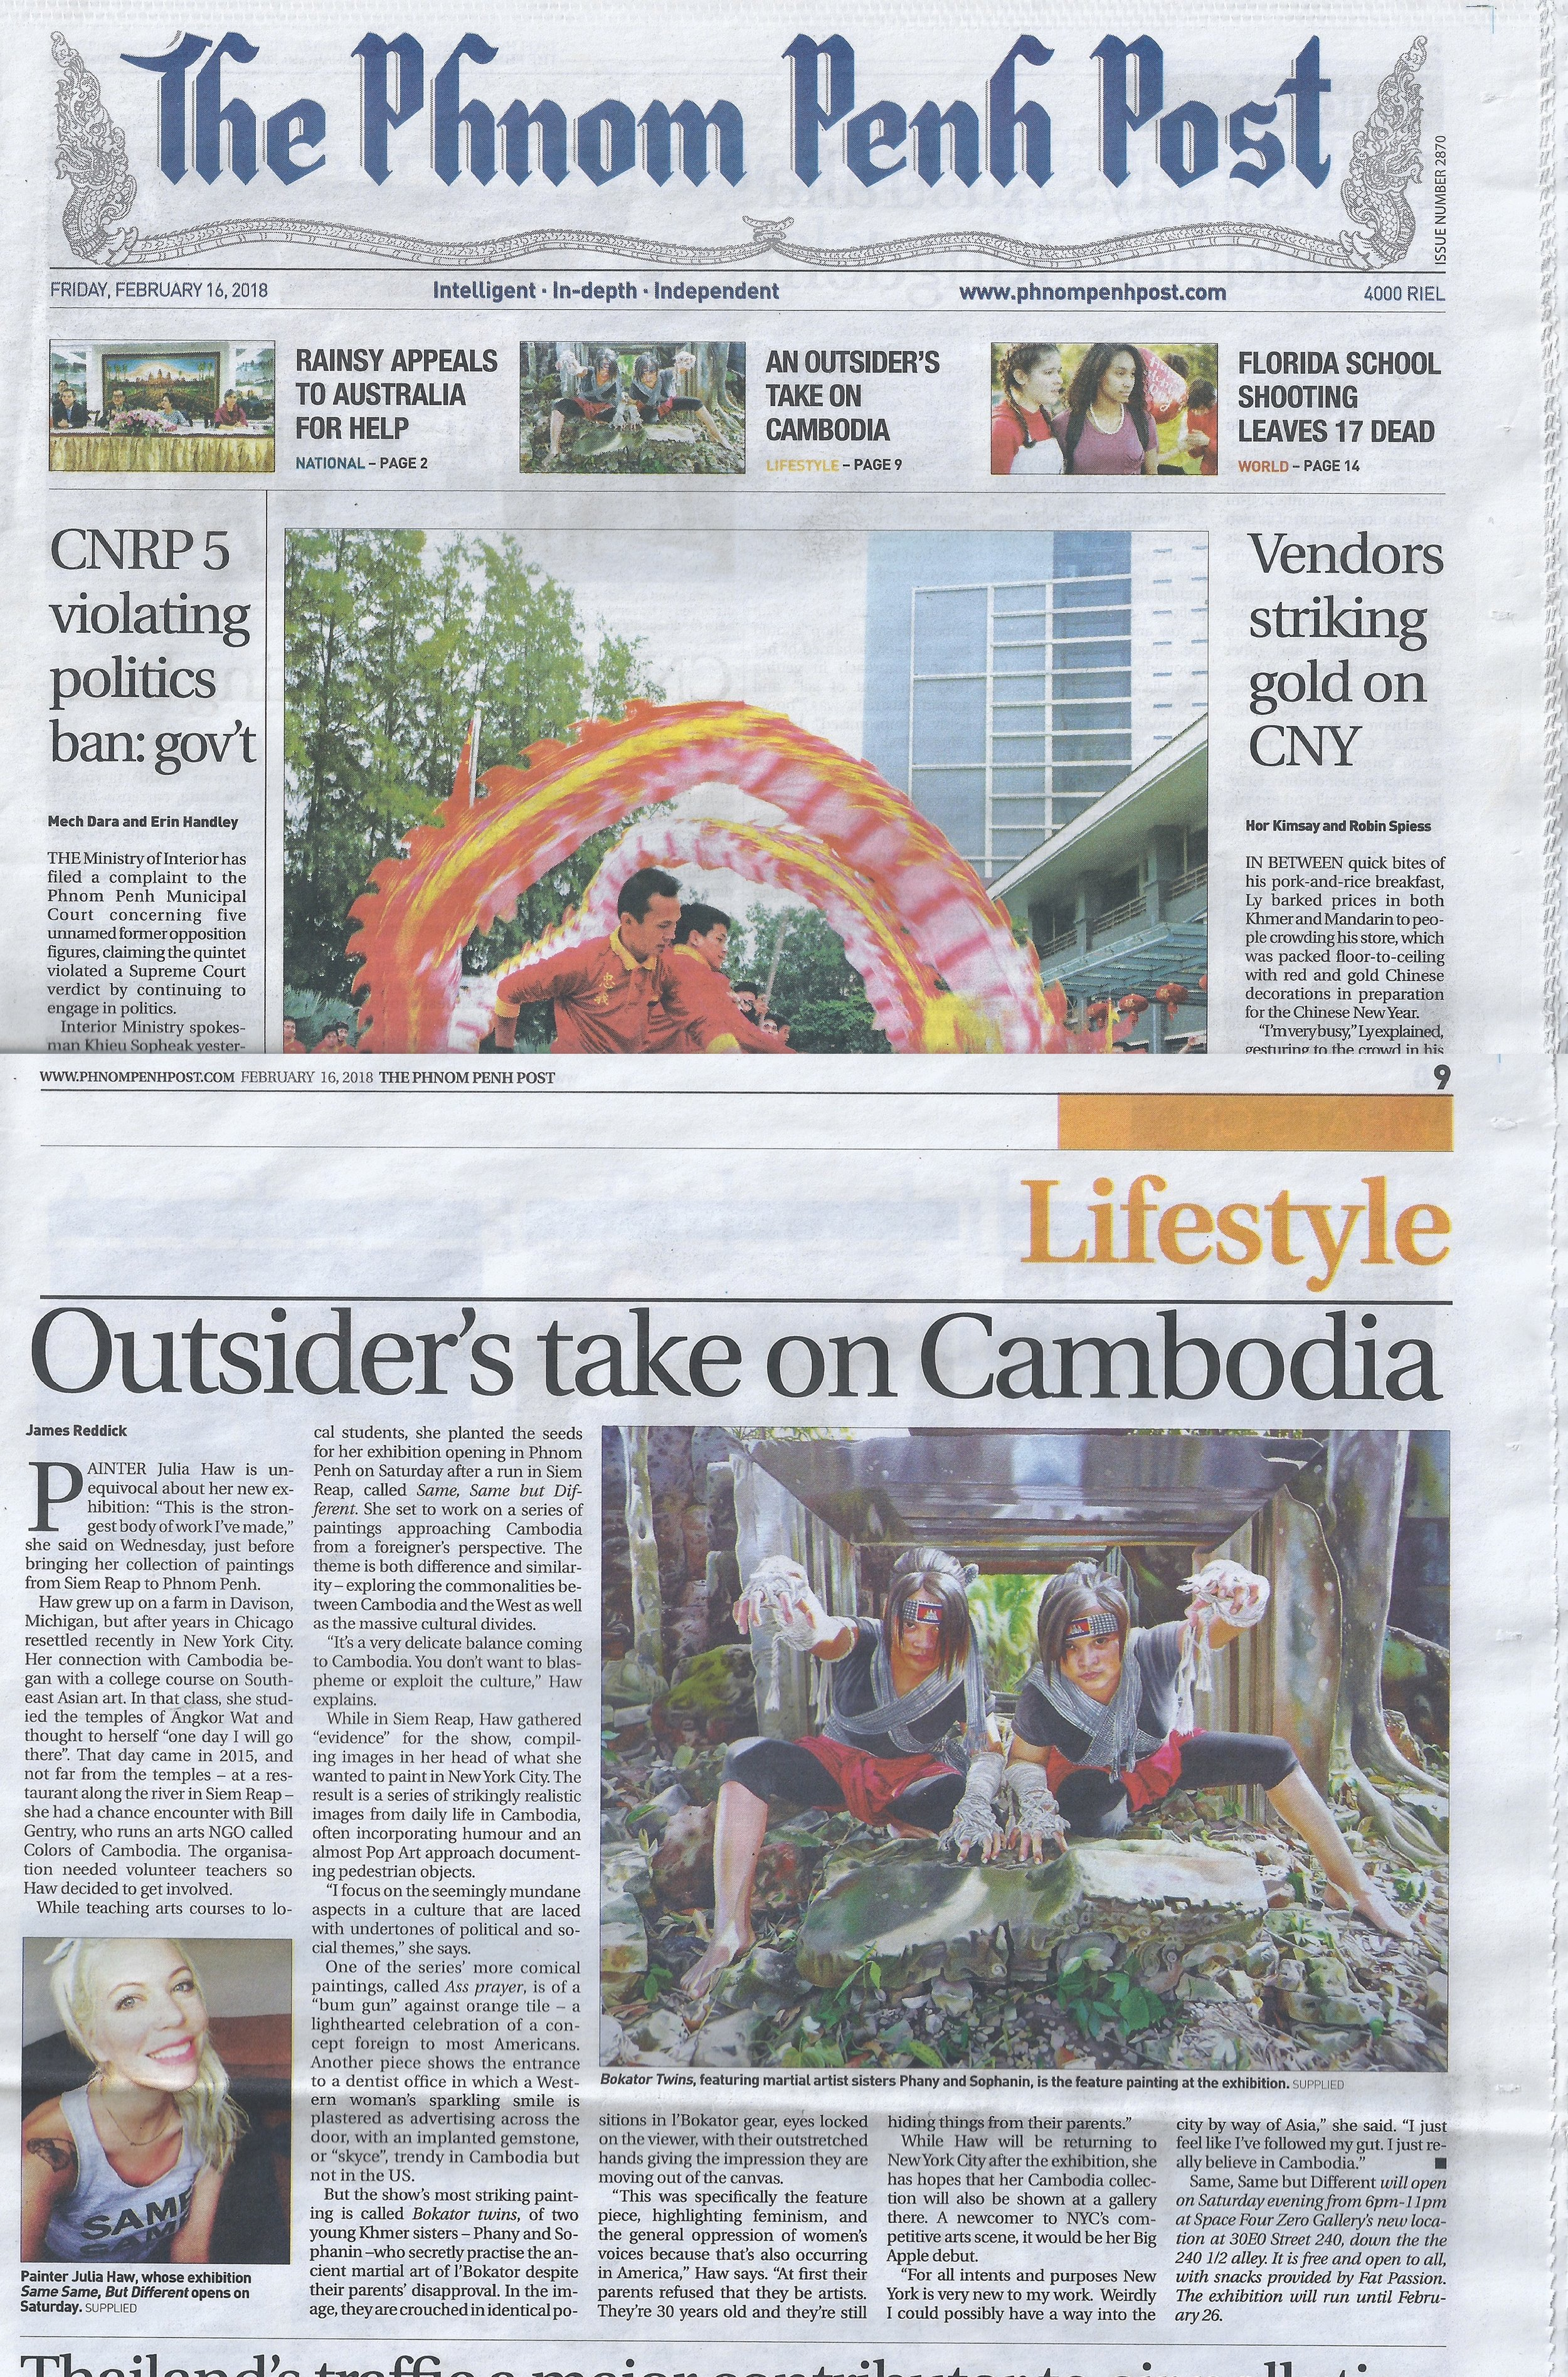 PhnomPenhPost_Cover&Middle.jpg